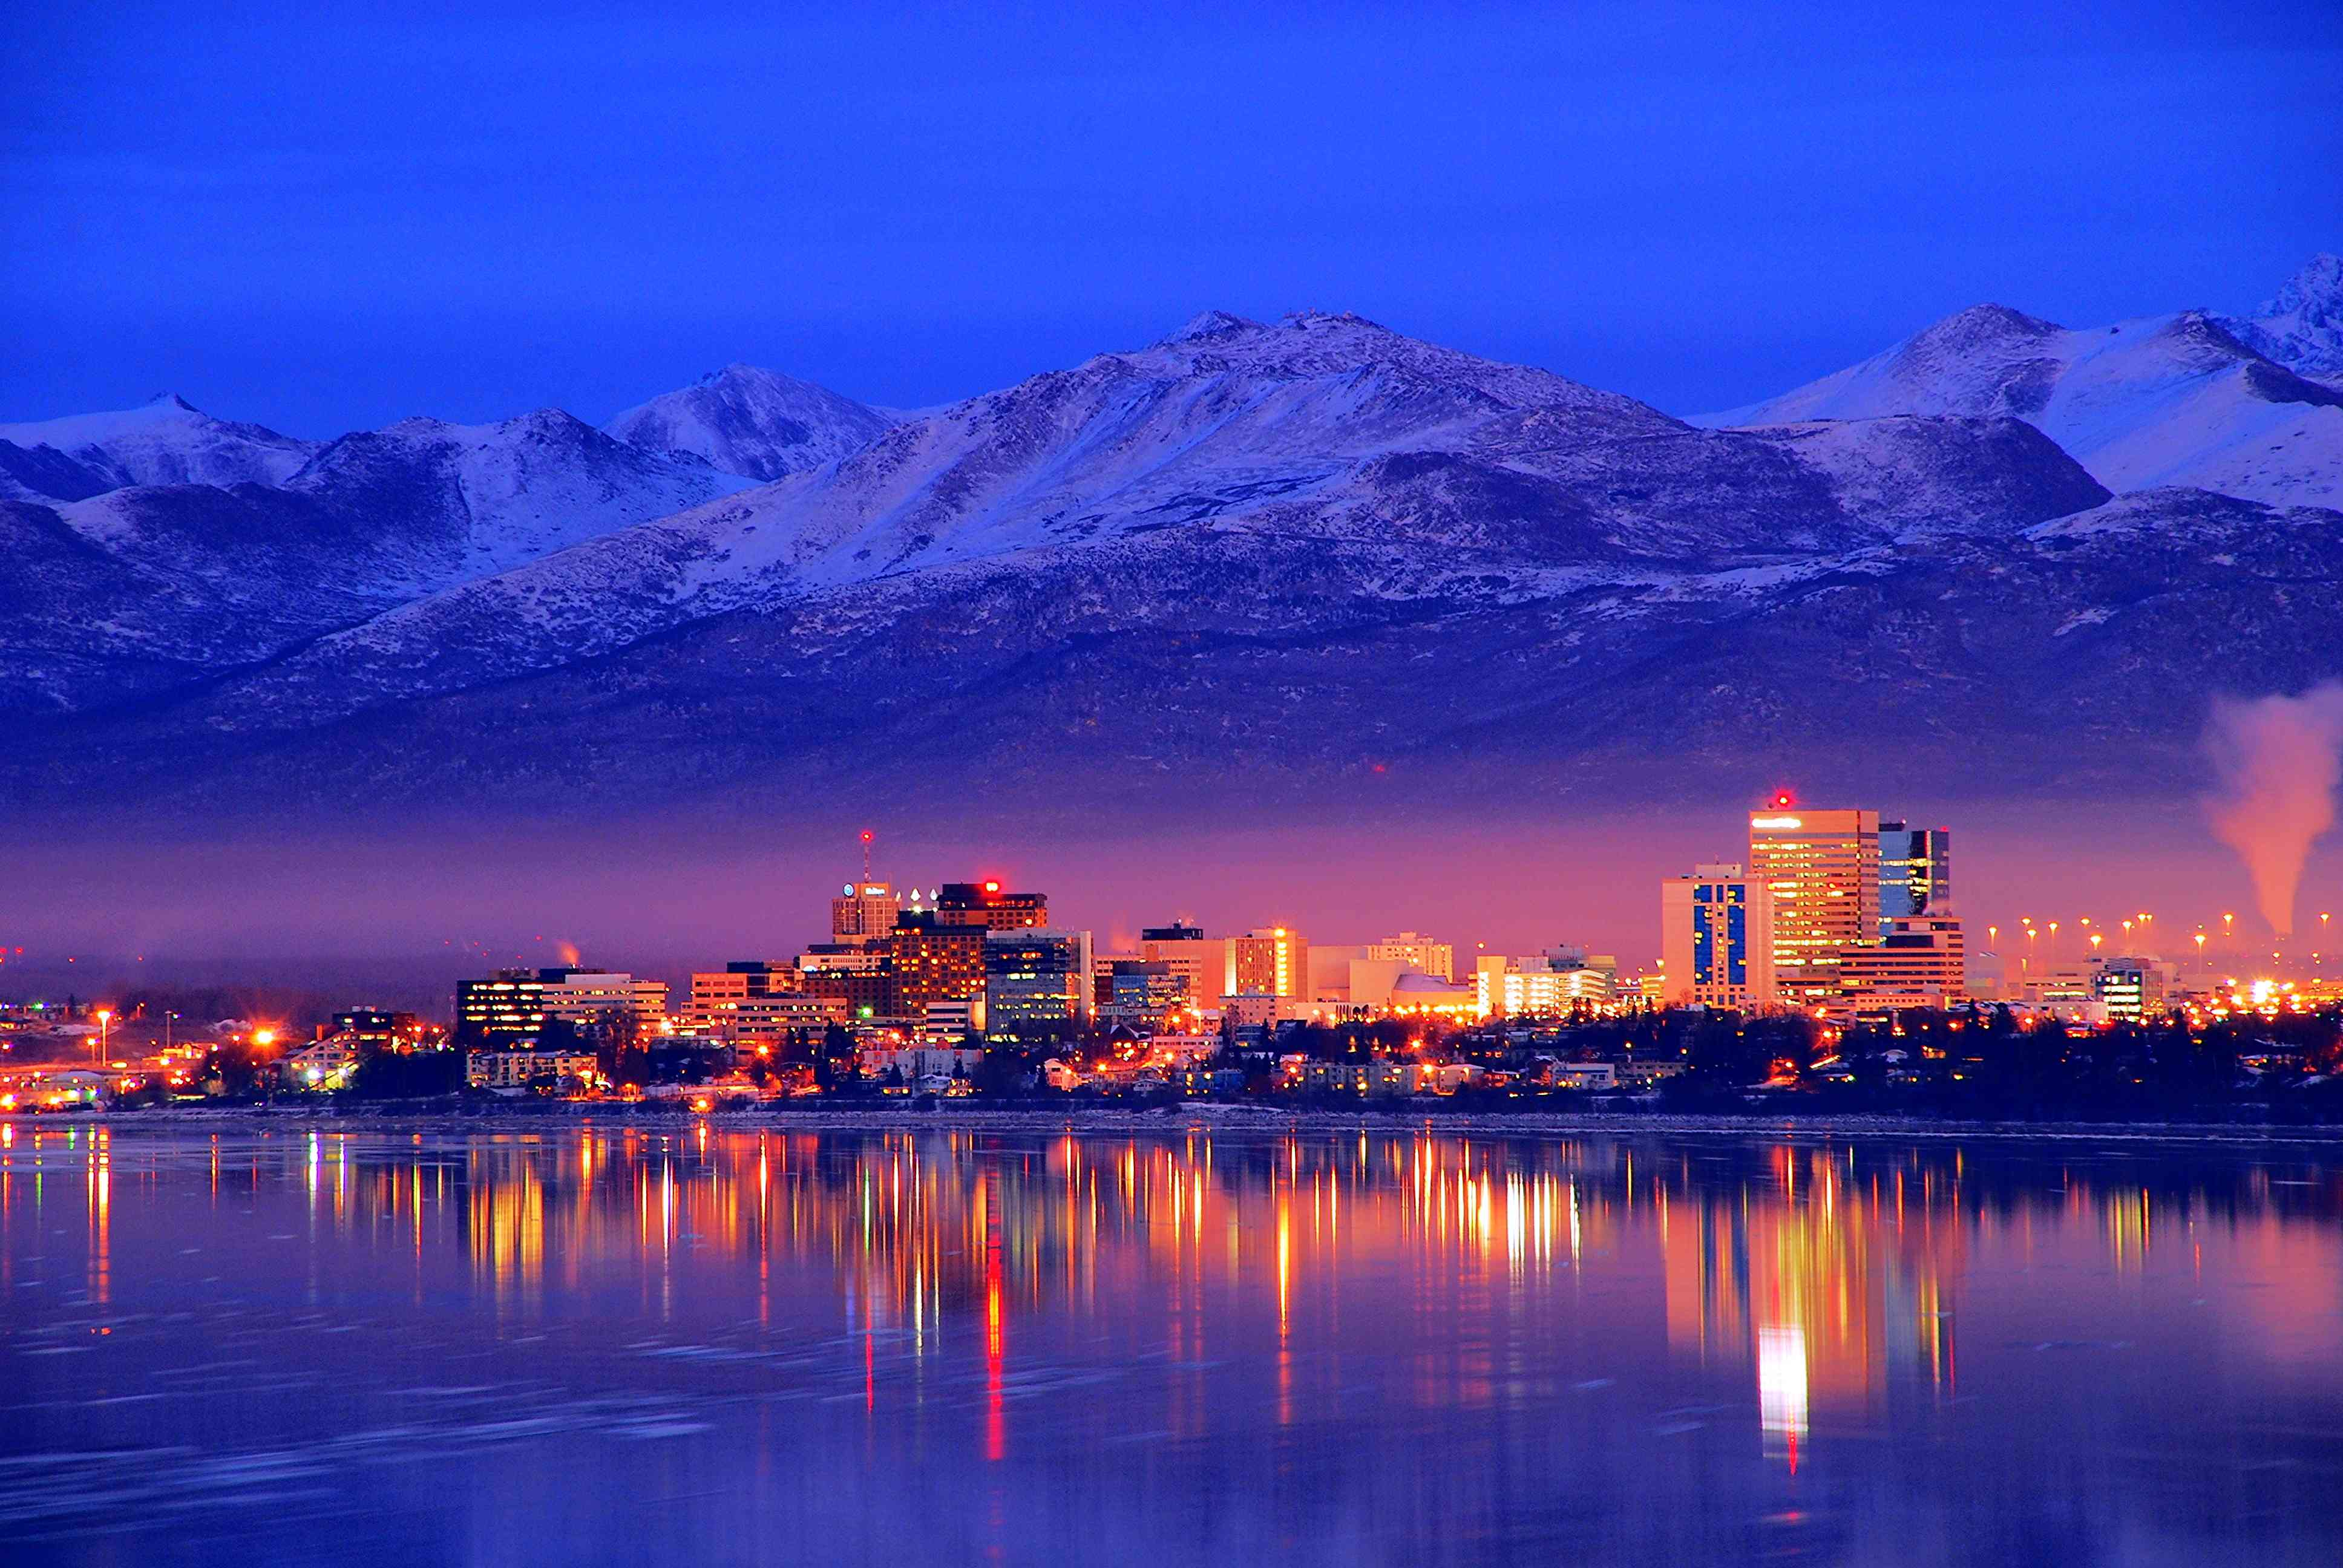 city skyline at night with water reflecting orange lights and mountains in the backgroud